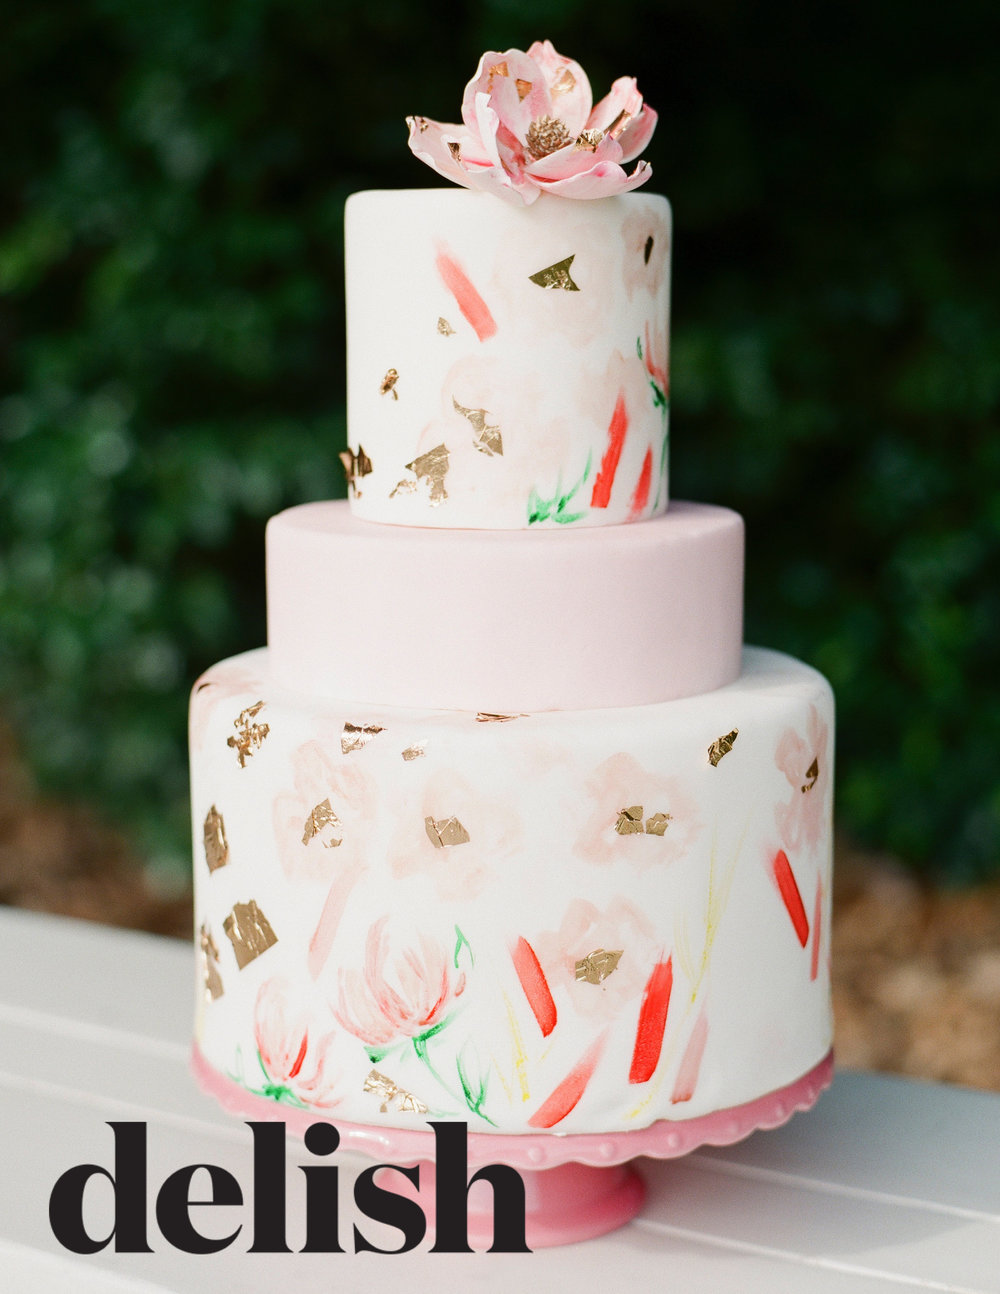 10 Of The Most Popular Wedding Cake Bakeries In America